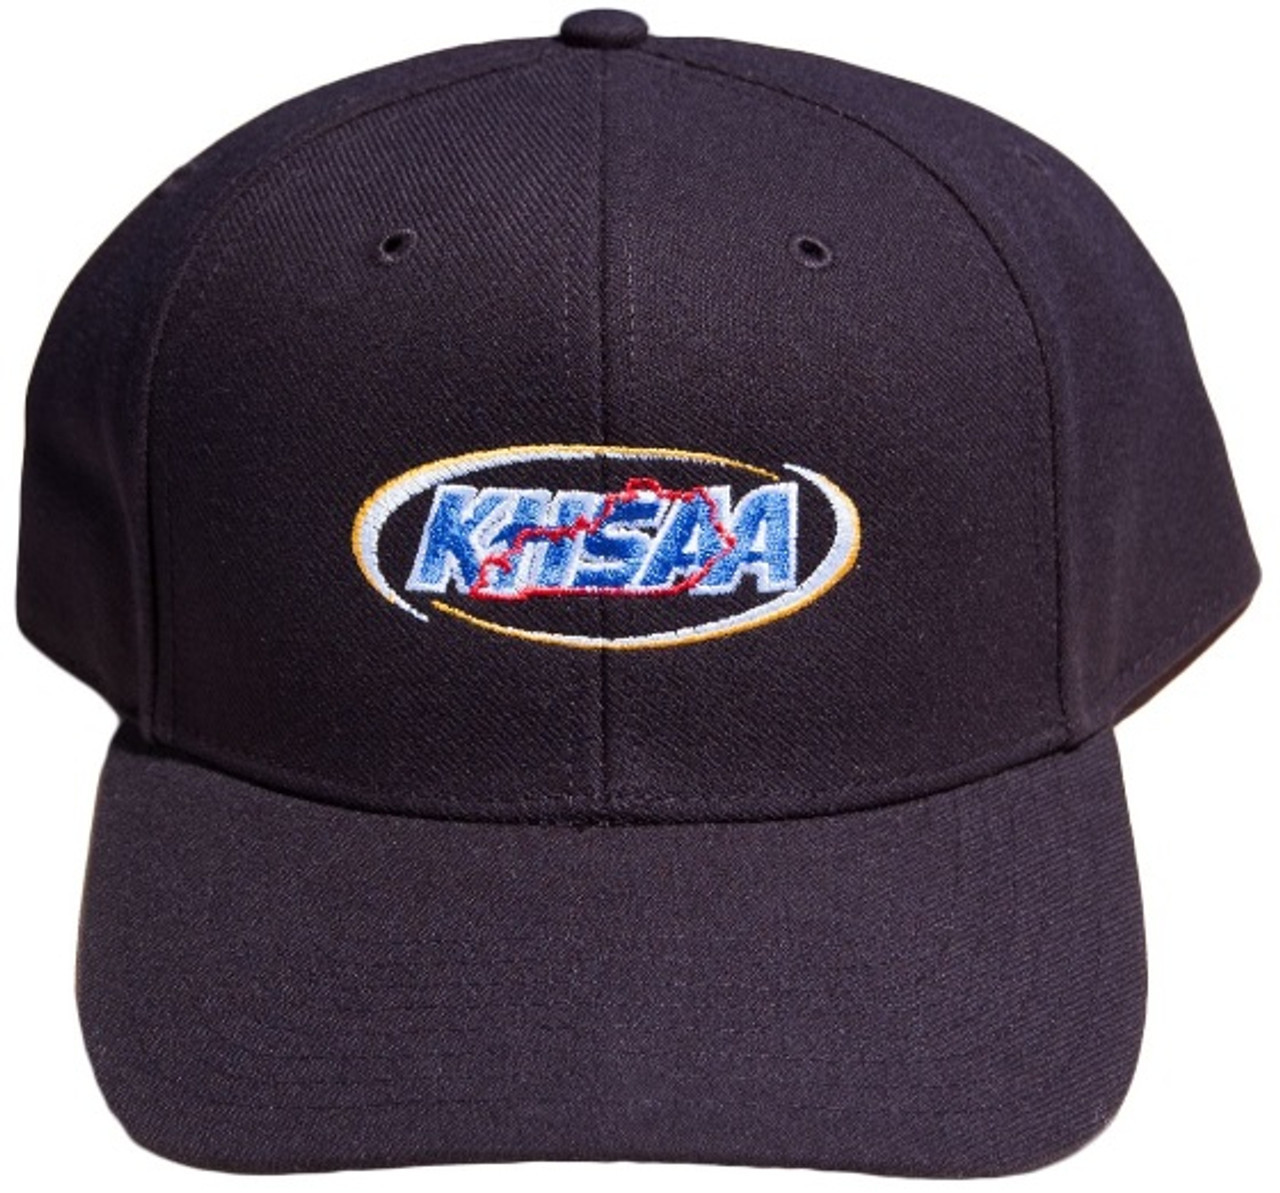 Kentucky HSAA Fitted 8-stitch Umpire Base Cap